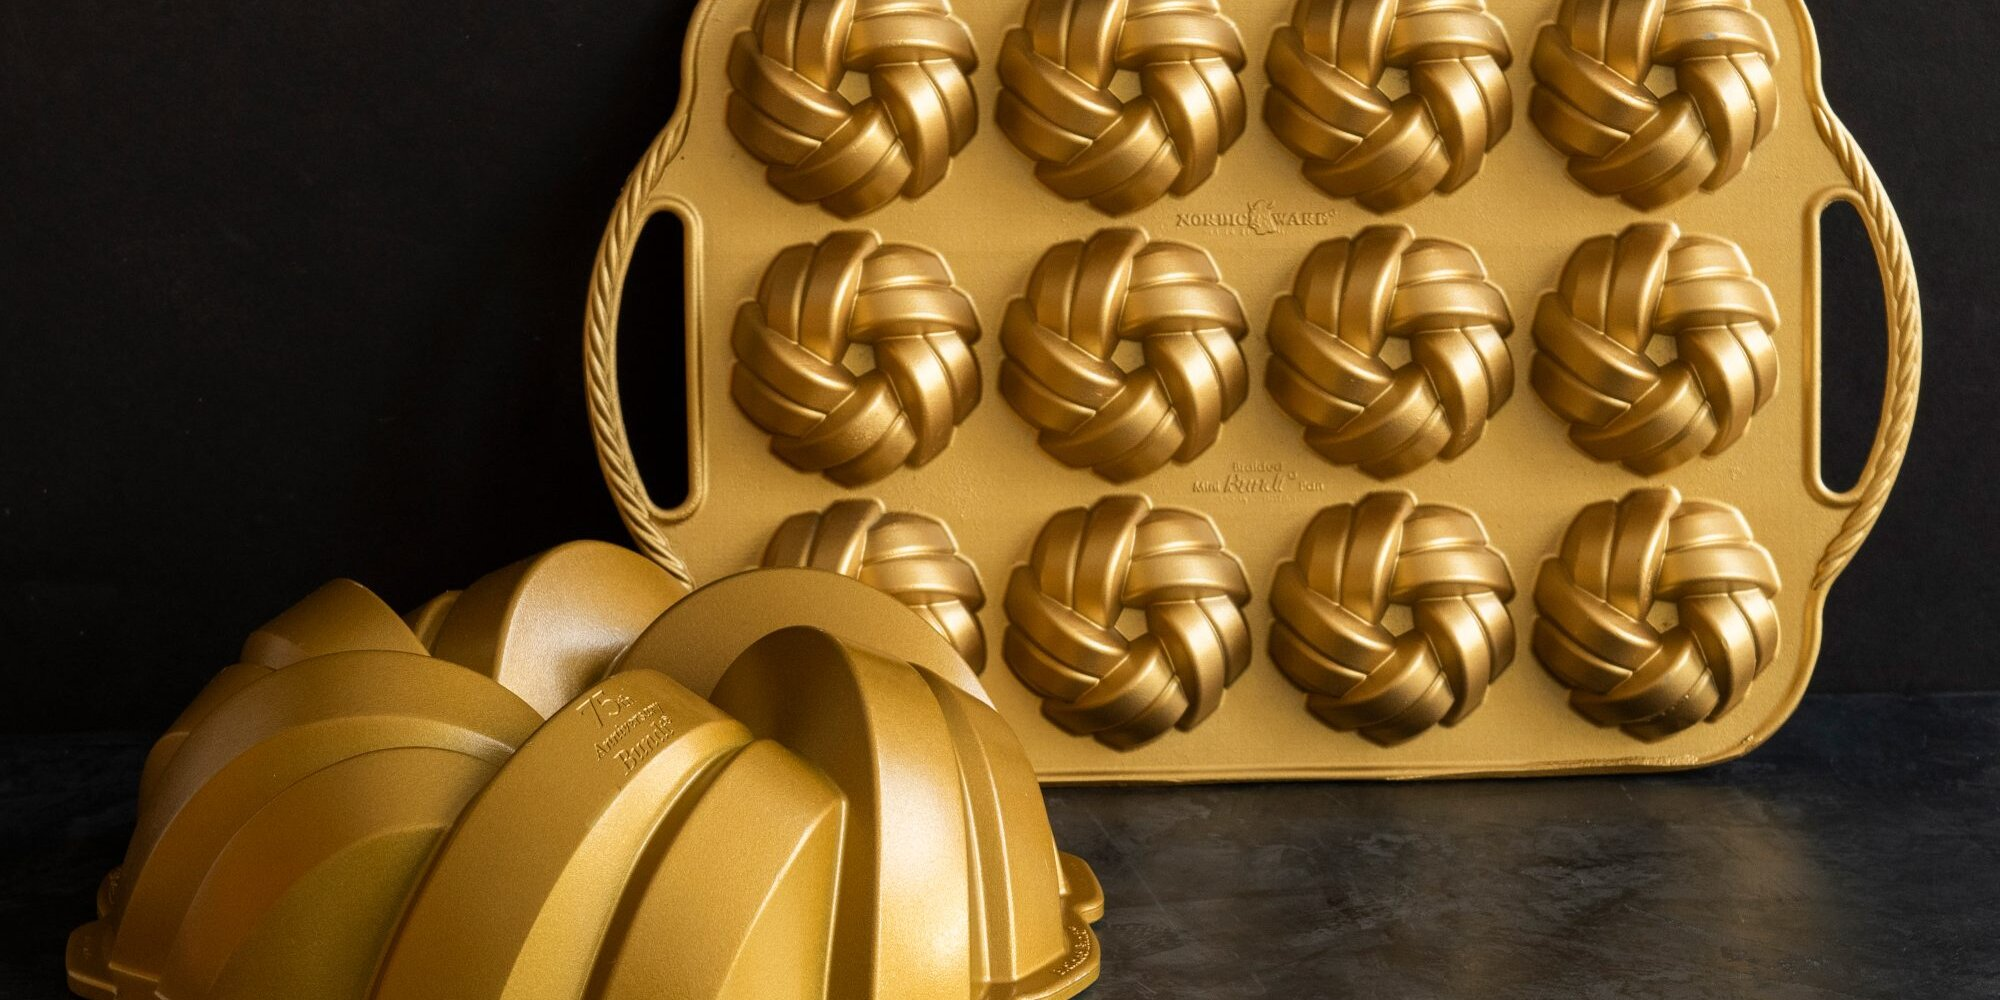 Nordic Ware Is Celebrating Their 75th Anniversary with the Release of Two Brand-New Cake Pans